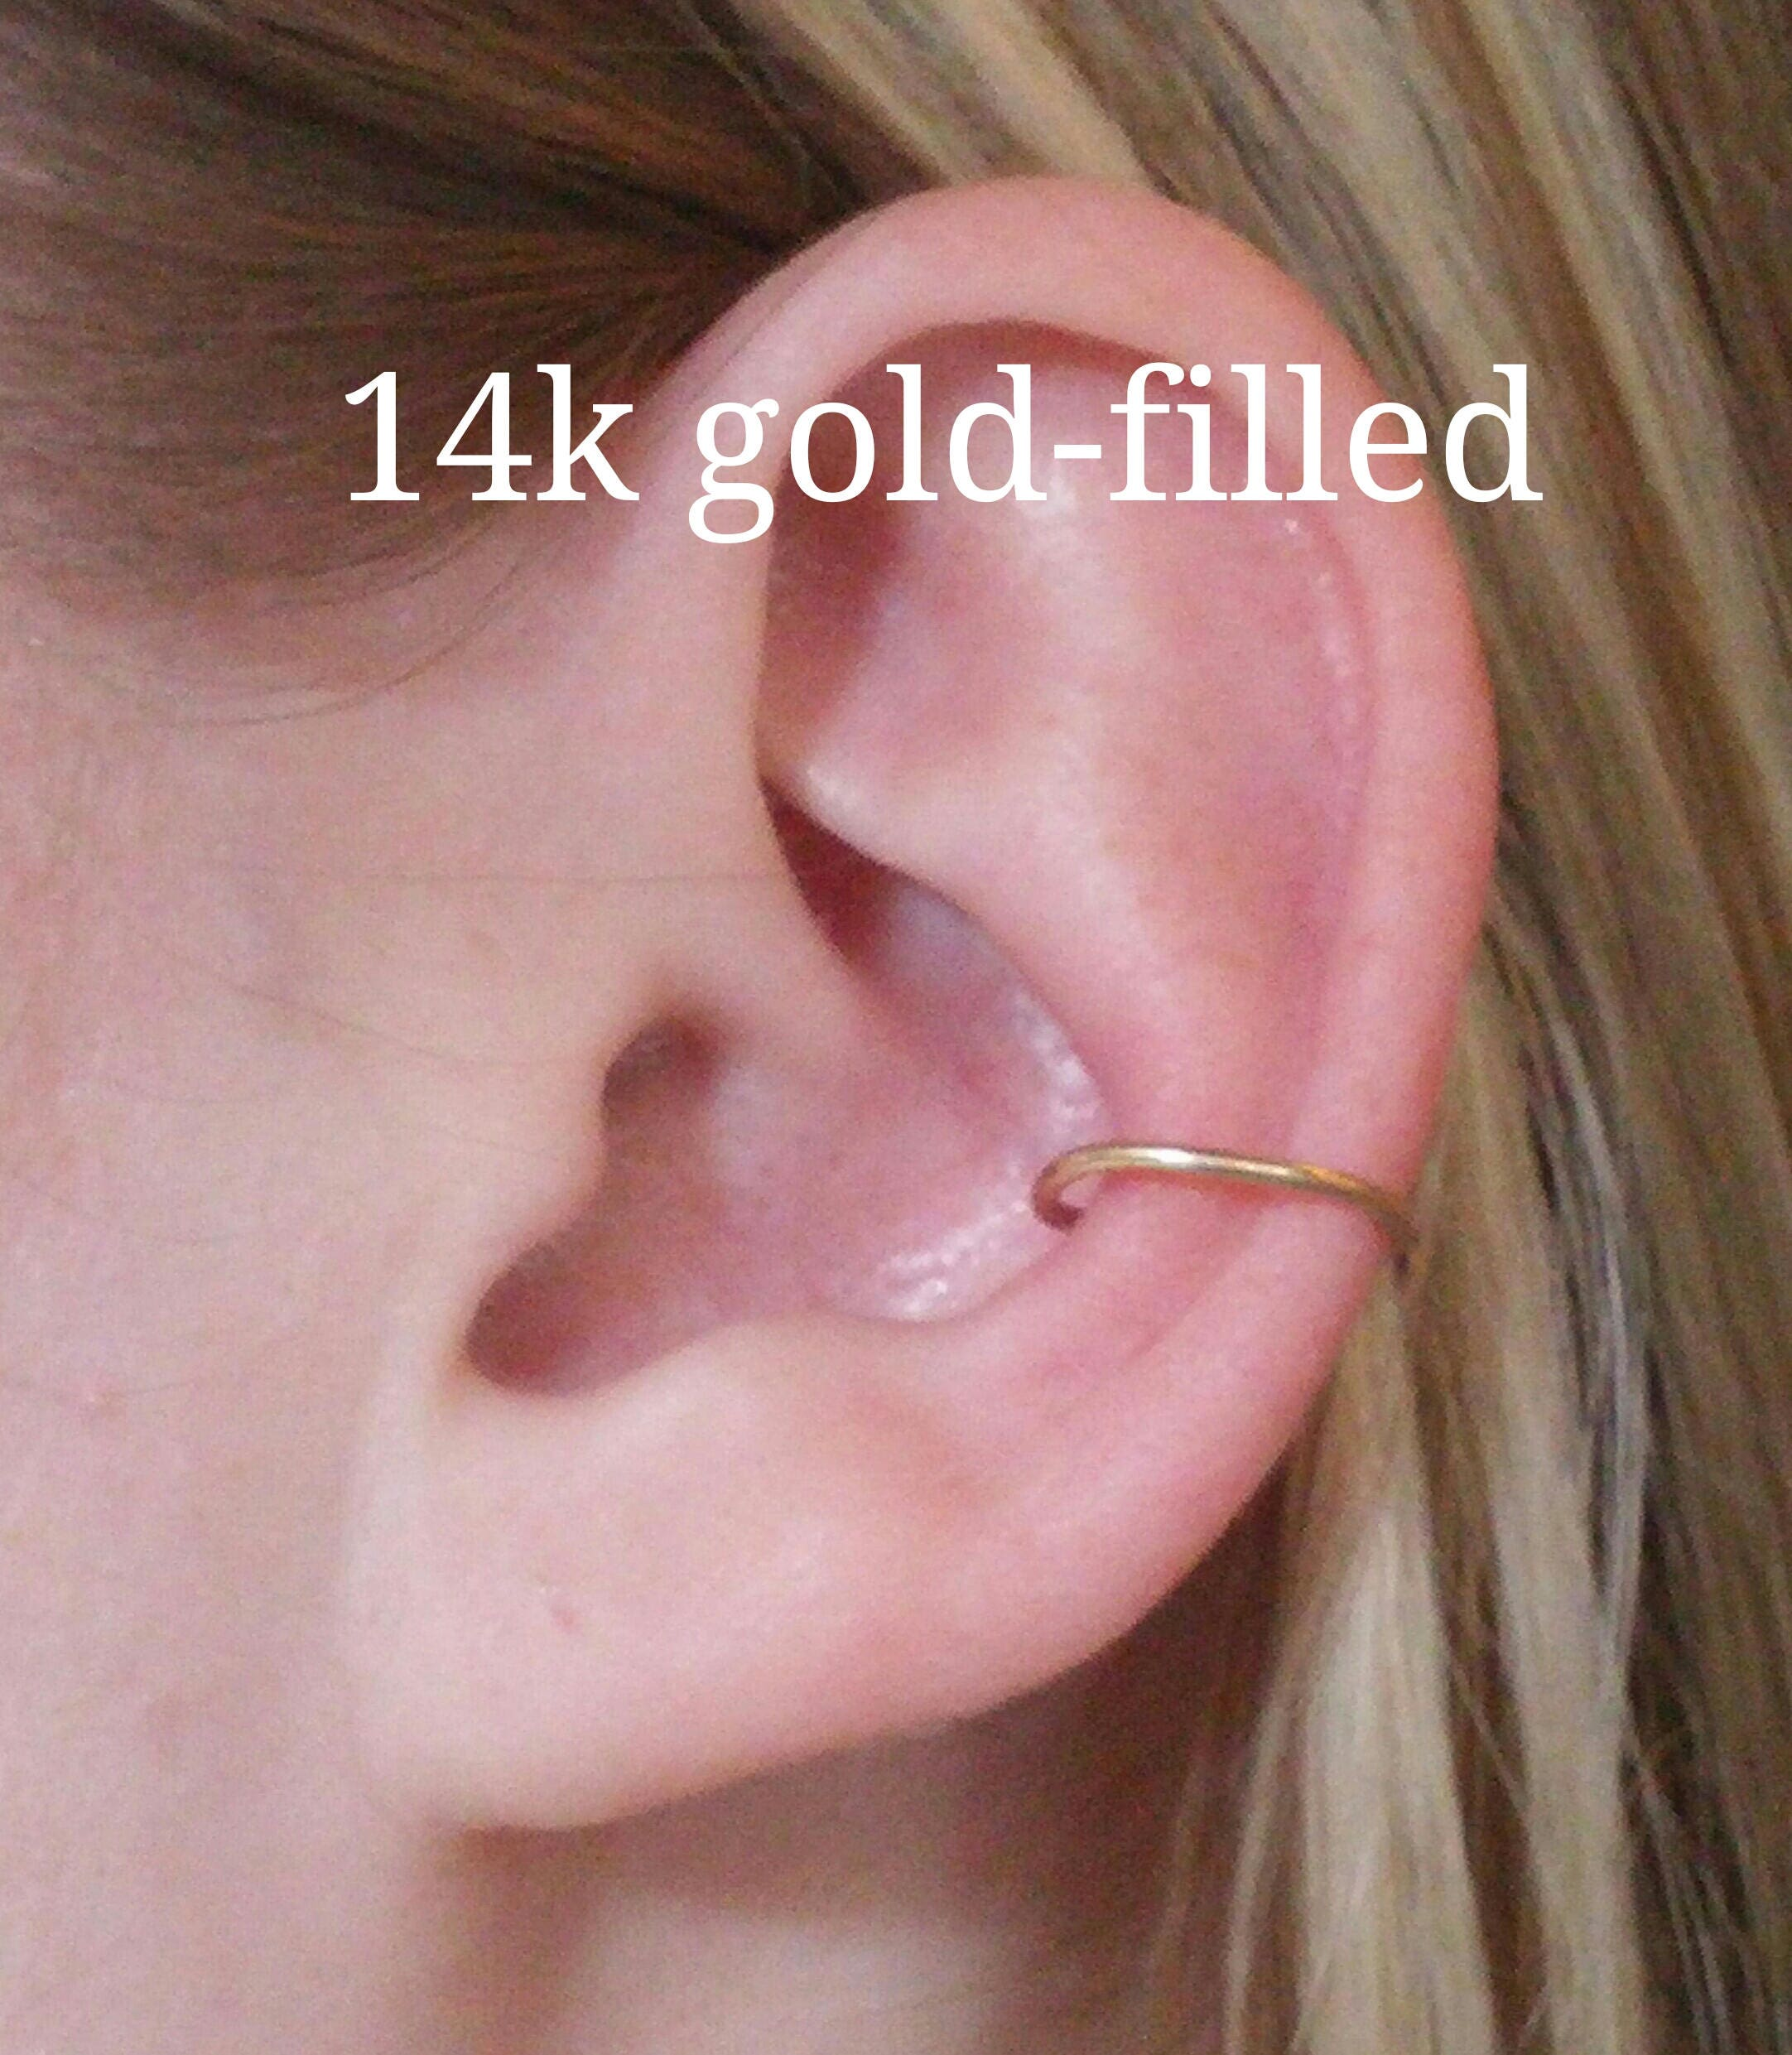 Conch Earring Conch Piercing Conch Hoop Conch Piercing Etsy